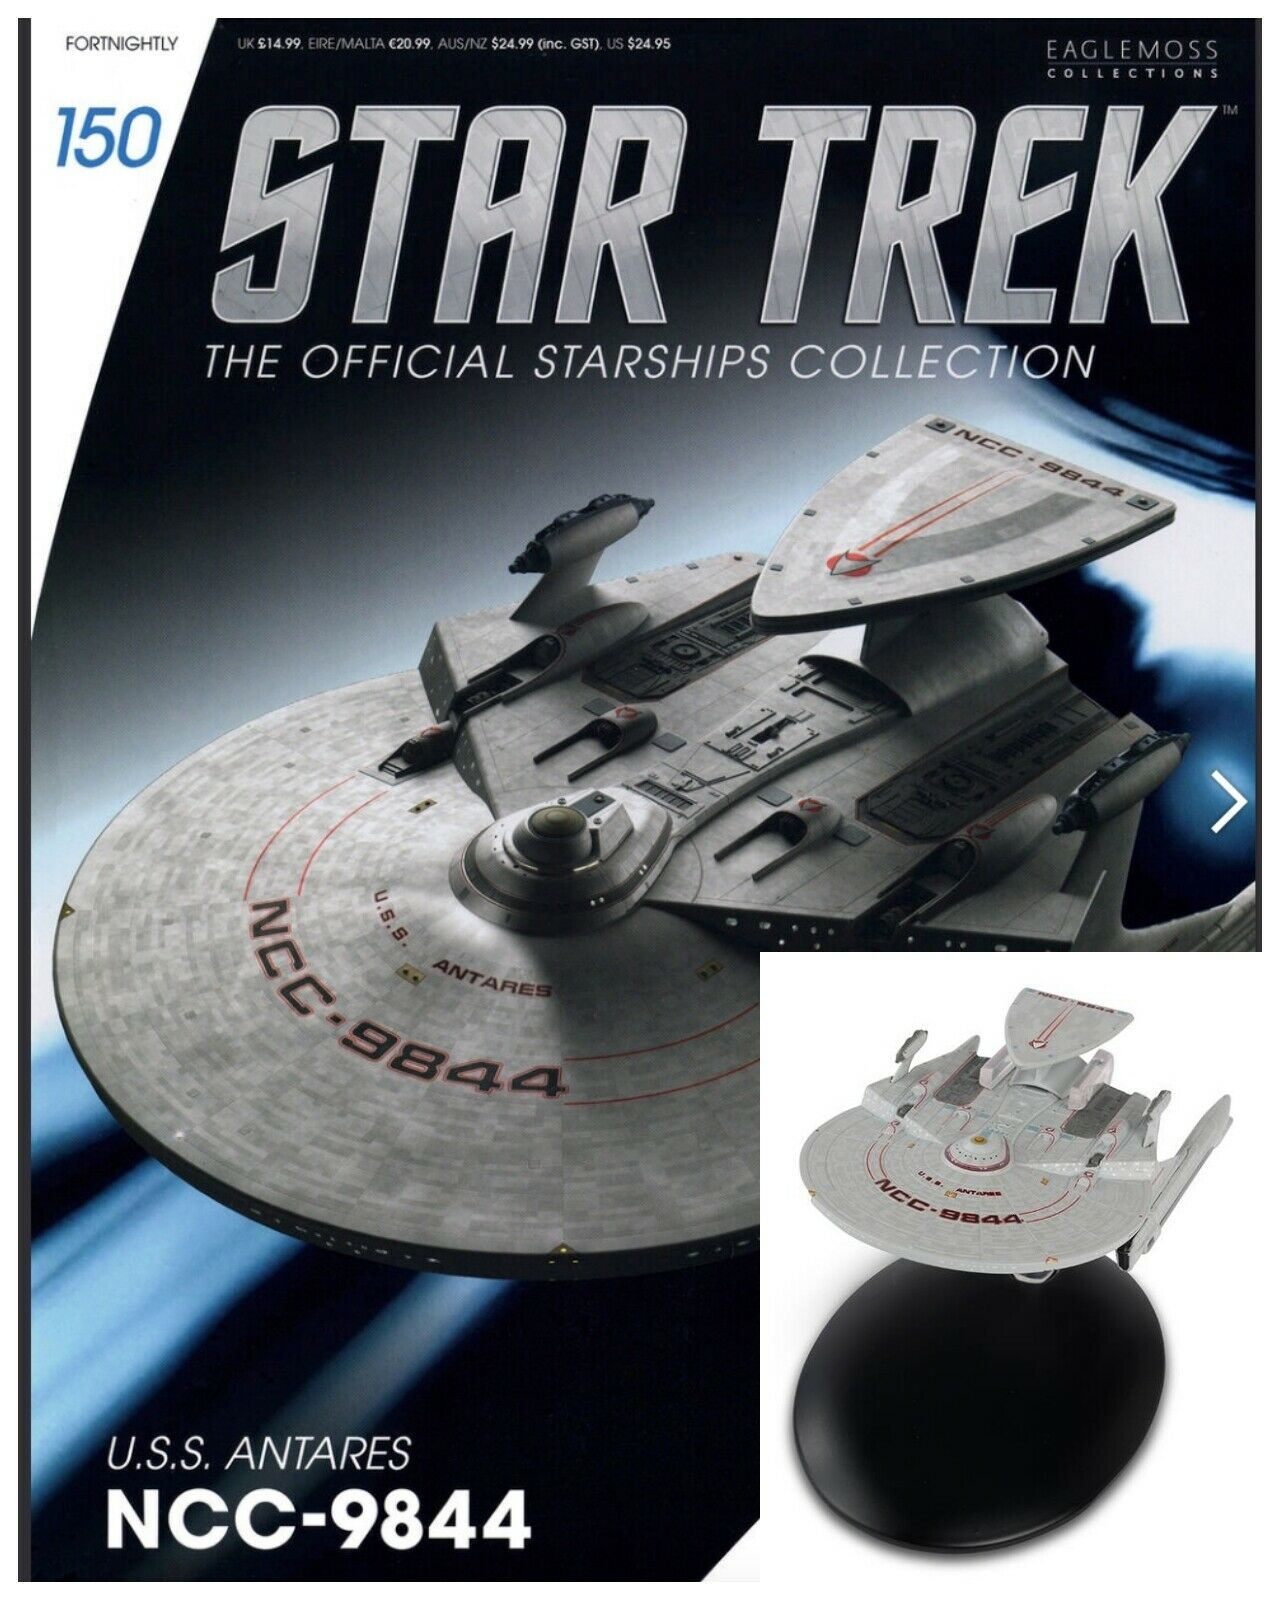 Issue 150: USS Antares NCC-9844 Starship